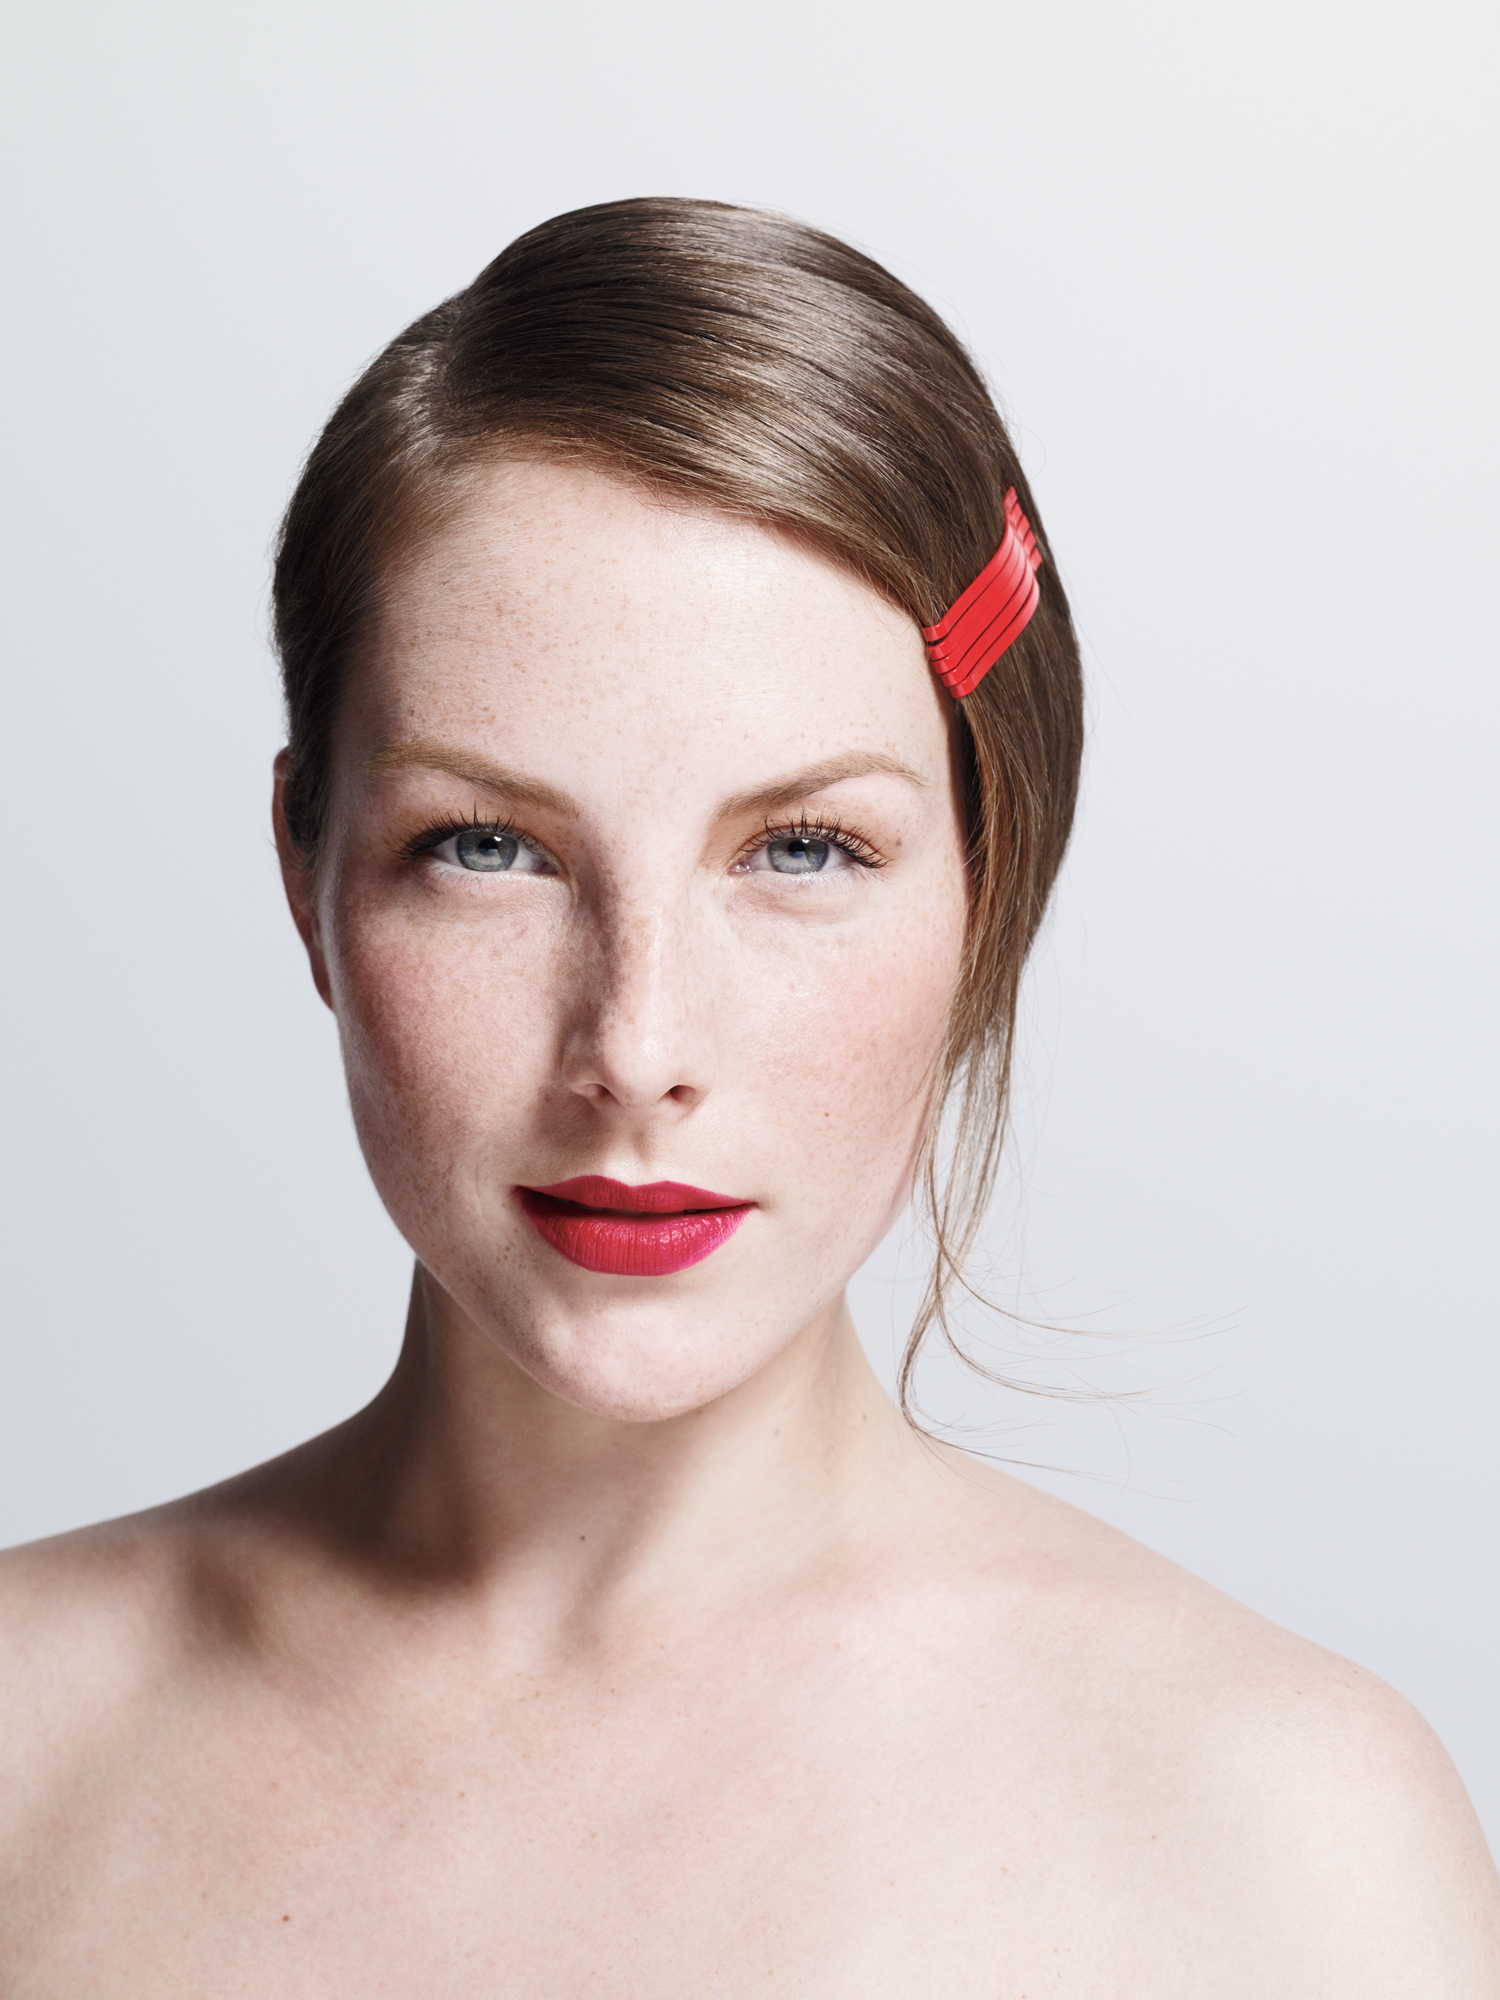 Model with red bobby pins in hair